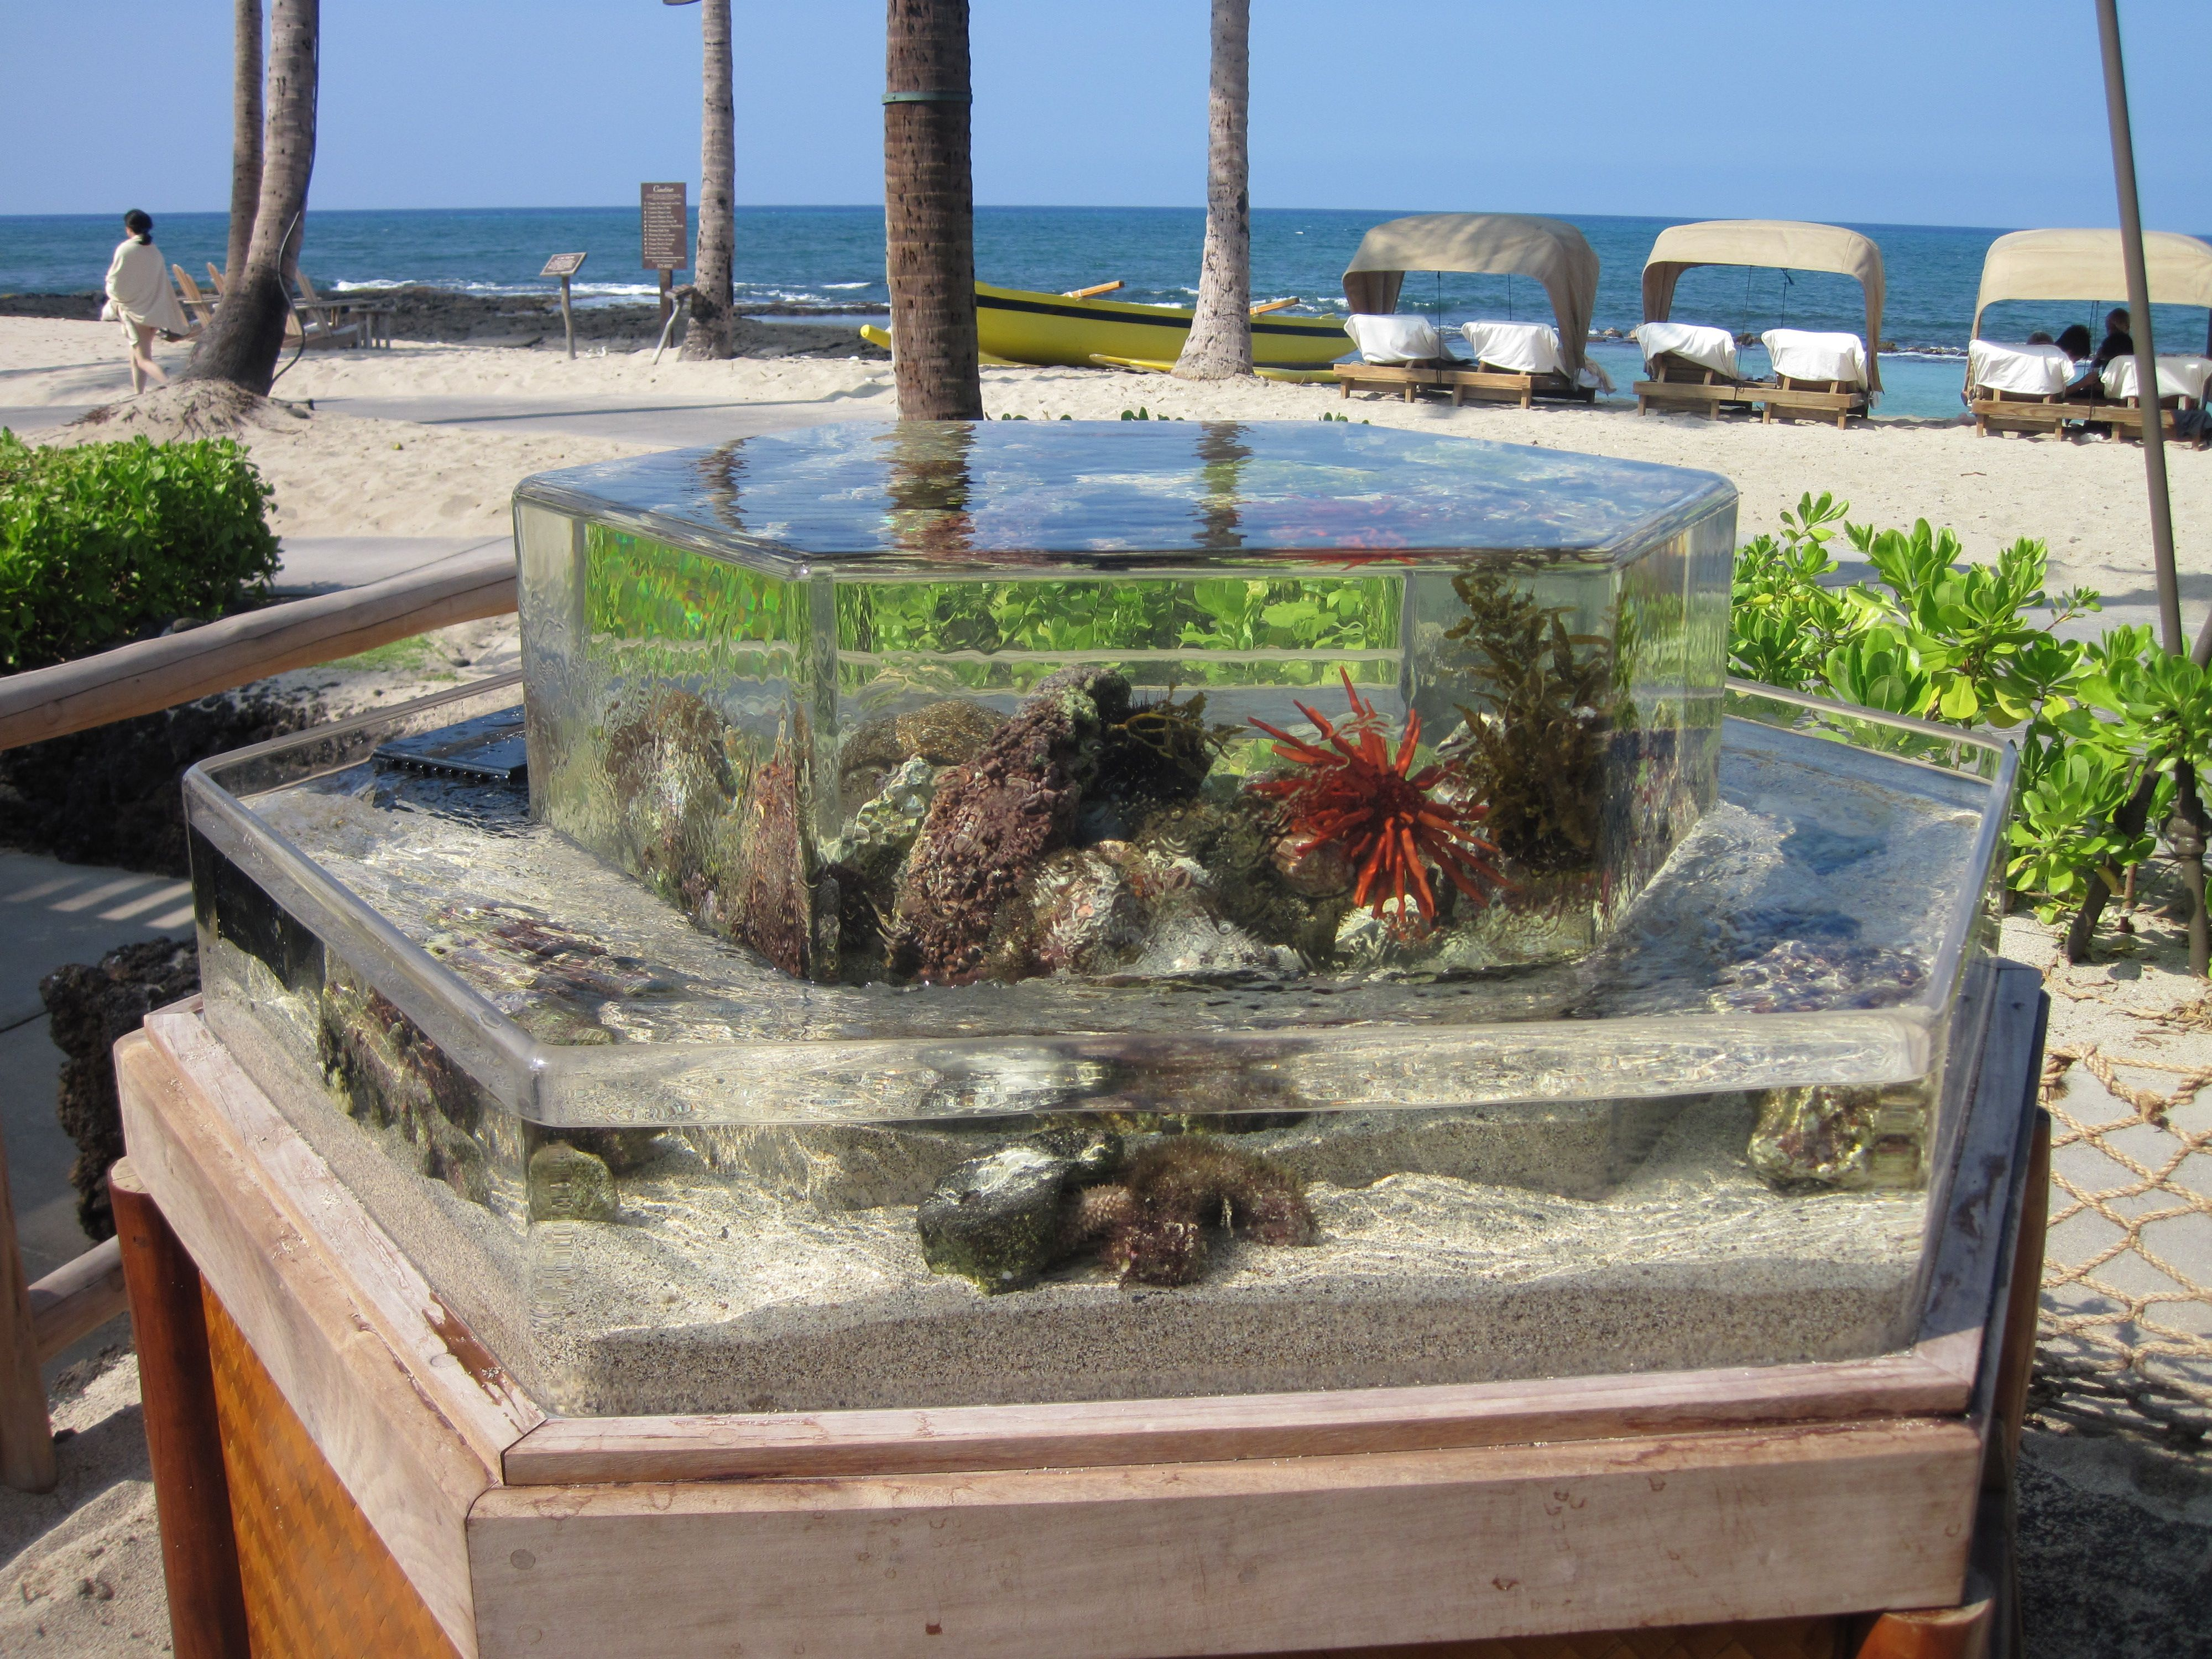 ZeroEdge Touch Tanks are great for interactive educational experiences and can be found at public aquariums and resort settings like this Hexagon located next to the beach at the Four Seasons Resort in Hawaii.